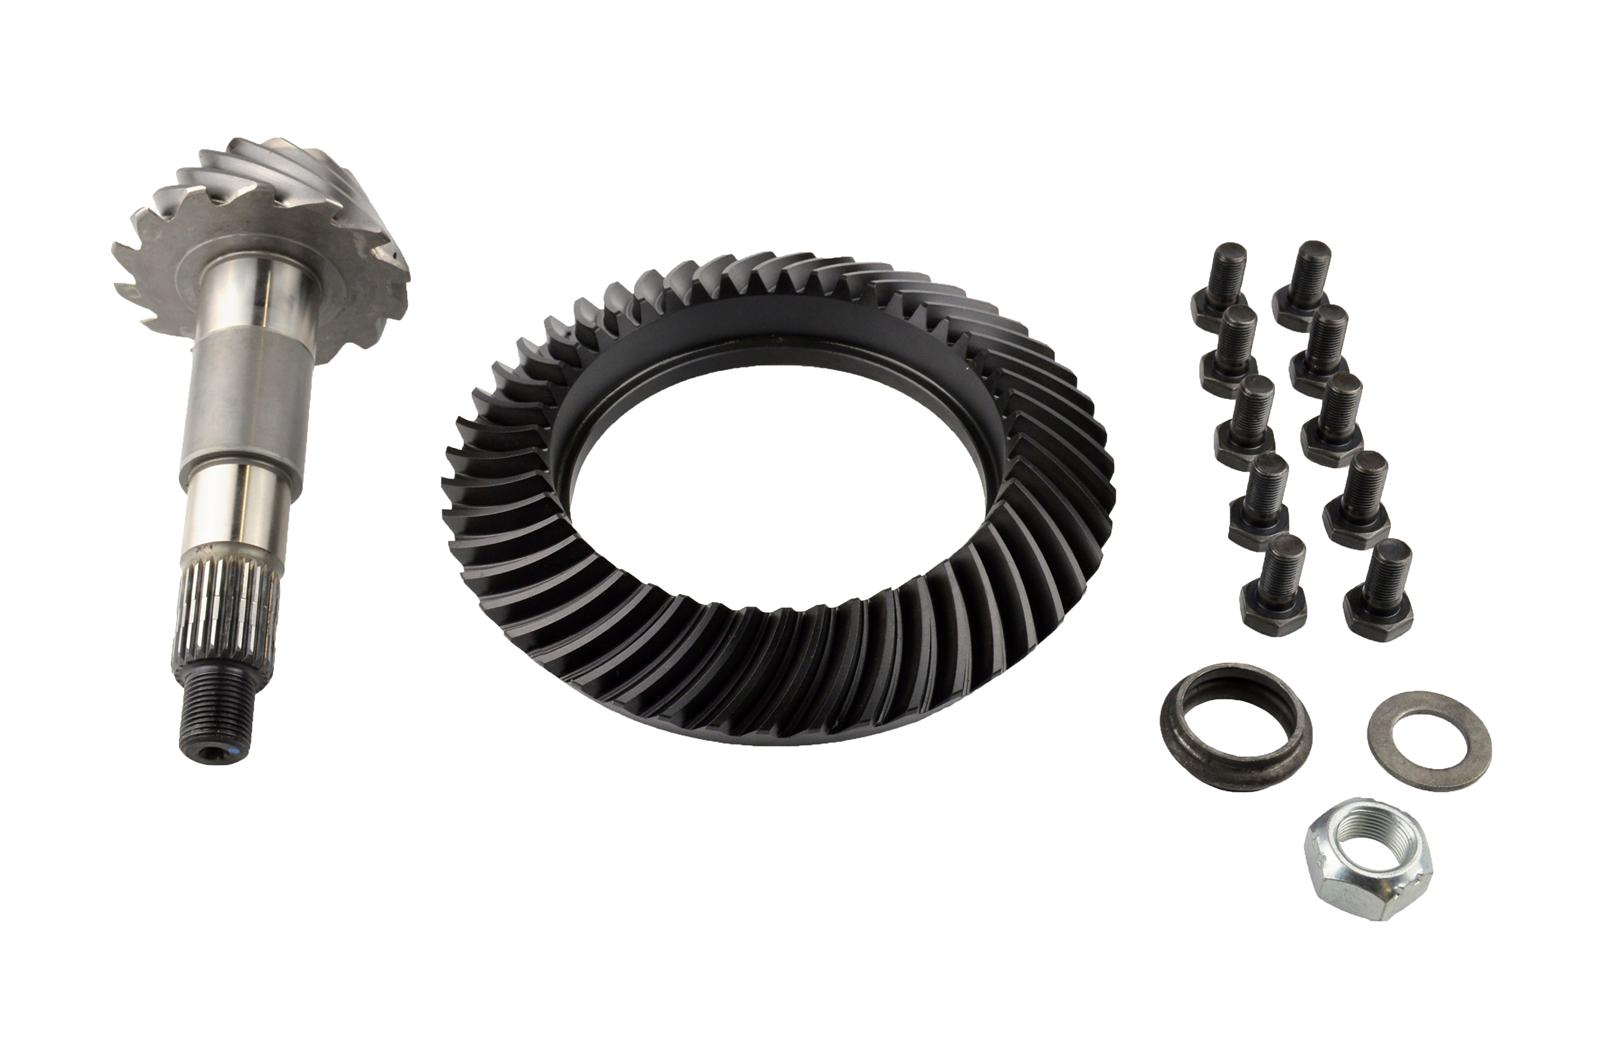 Spicer 2002556-5 Ring and Pinion Gear Set